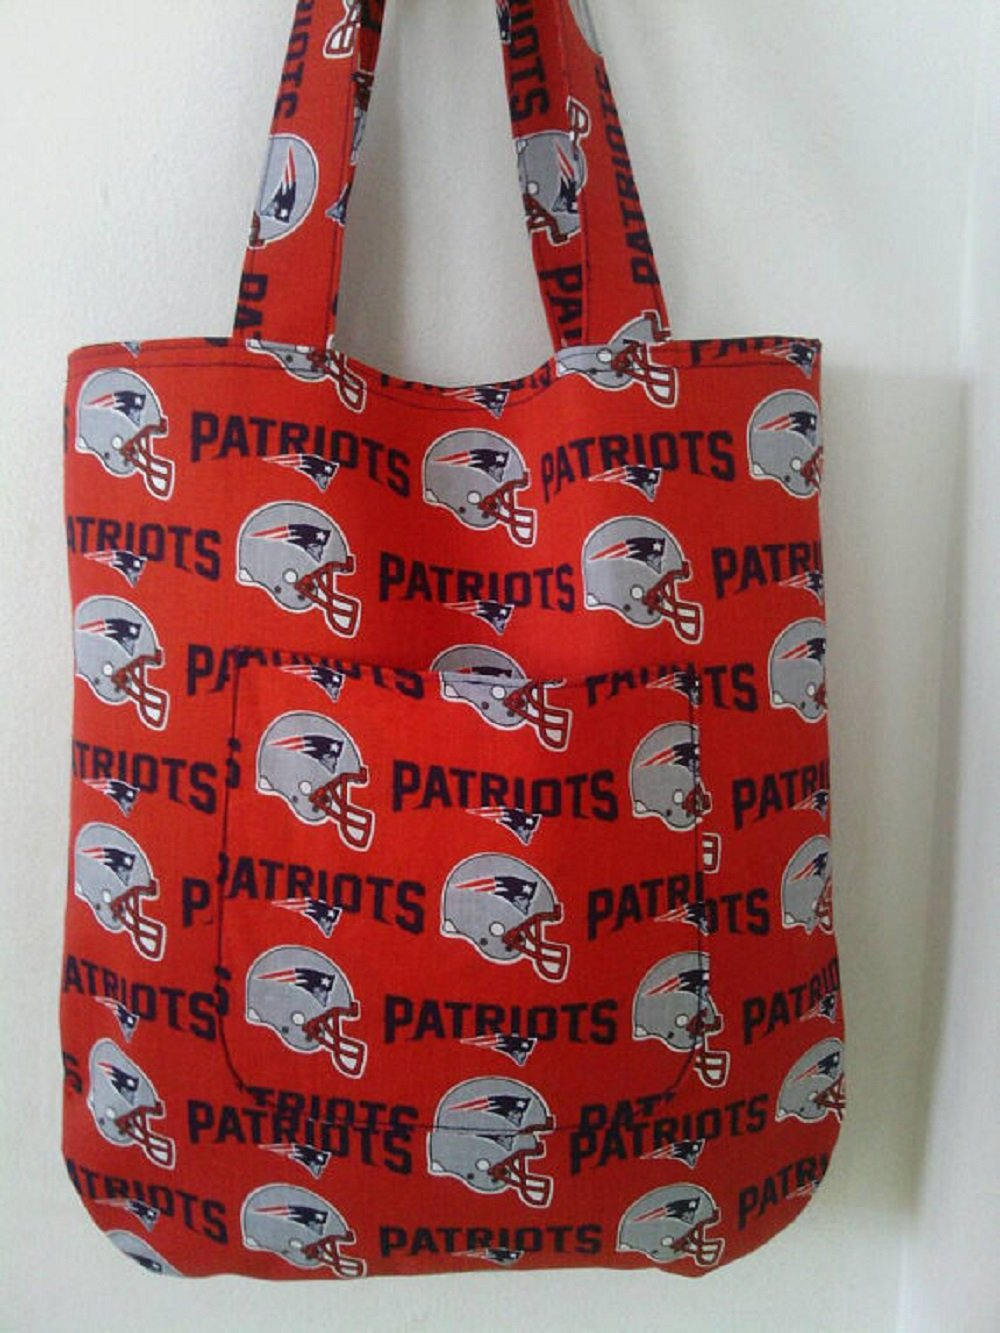 New England Patriots Inspired Handmade Tote